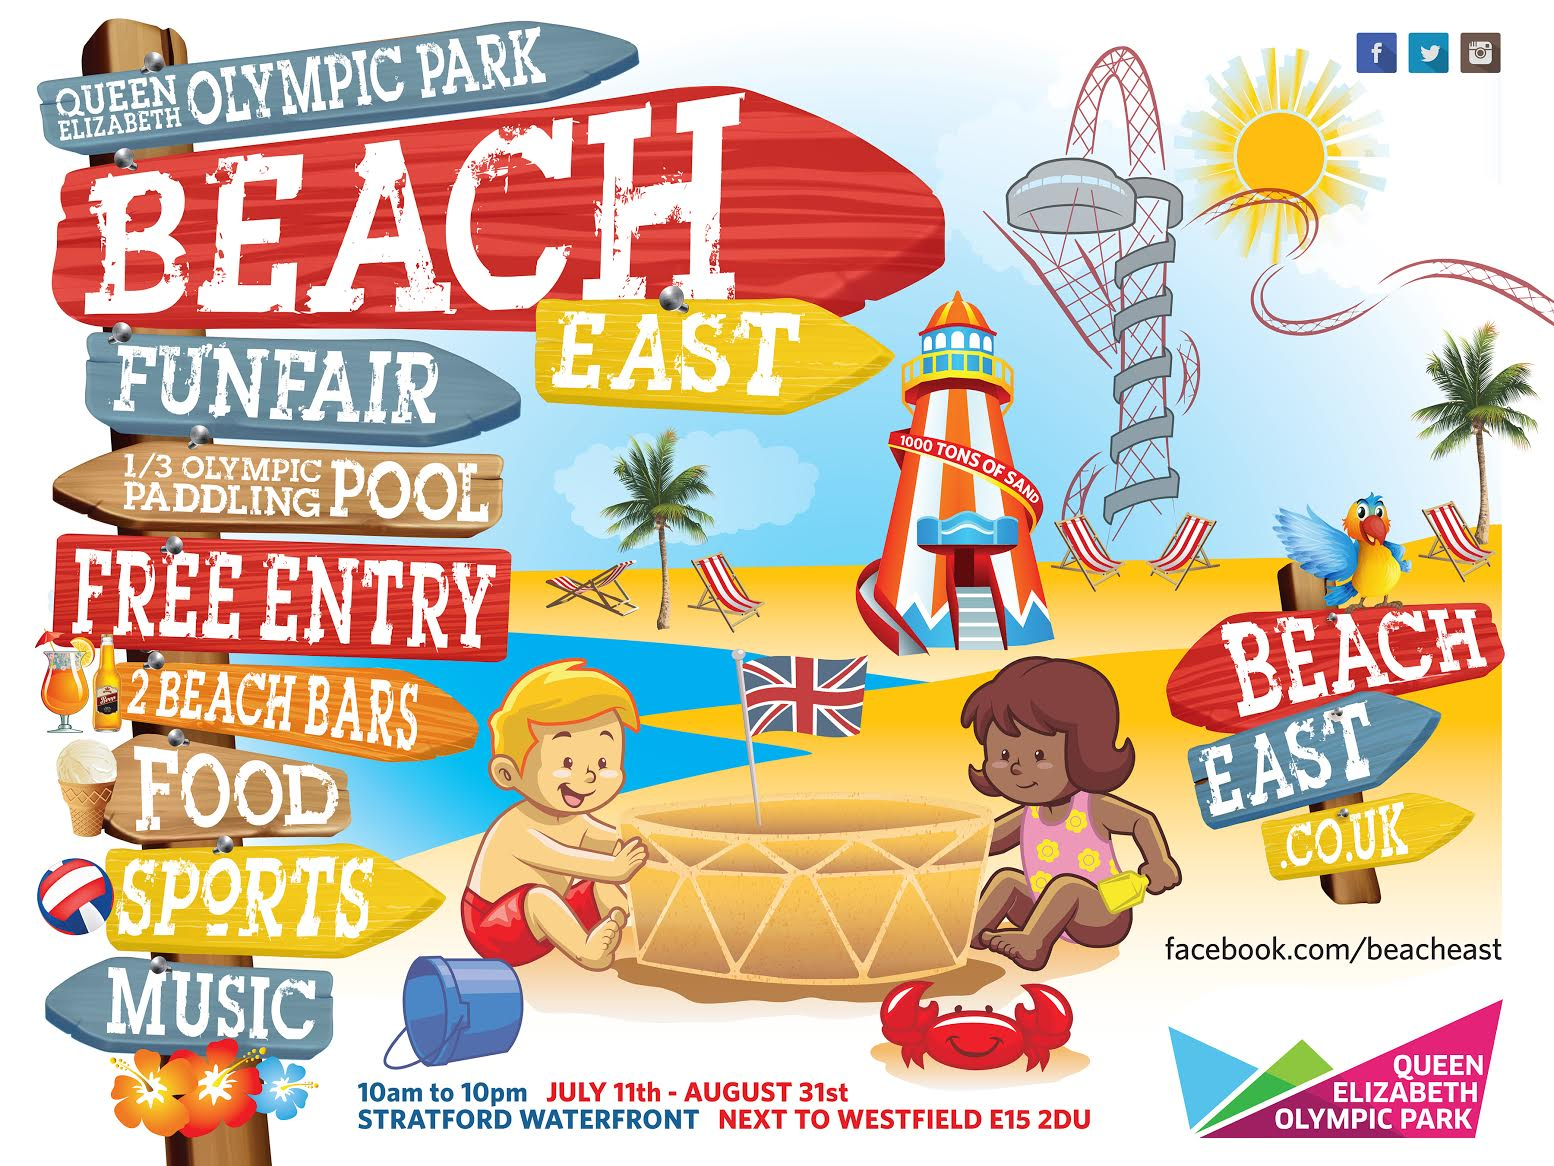 Loco LDN Beach at the Queen Elizabeth Olympic Park.